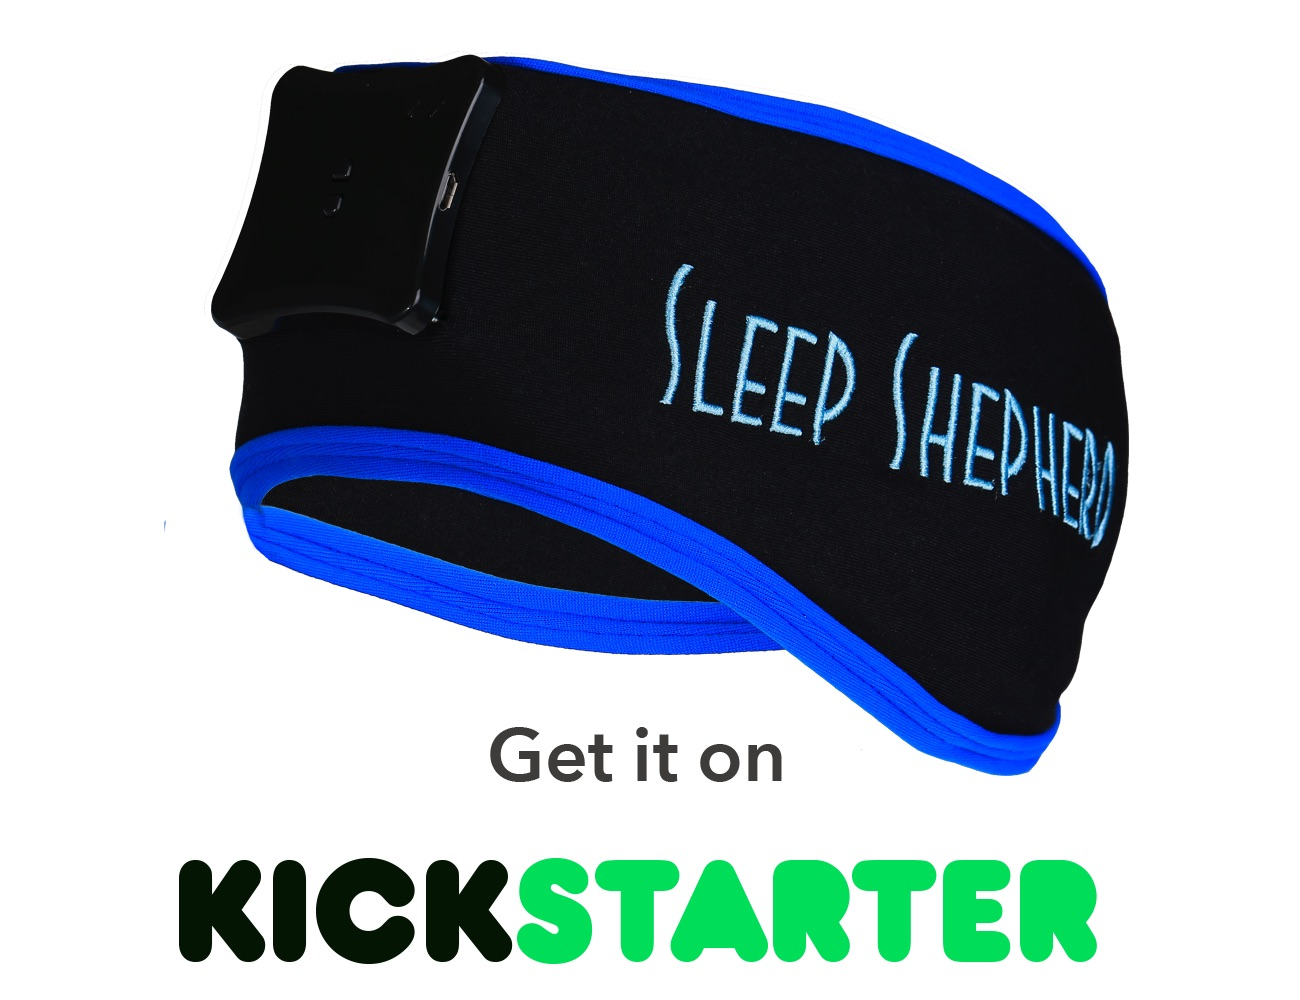 sleep-shepherd-blue-06